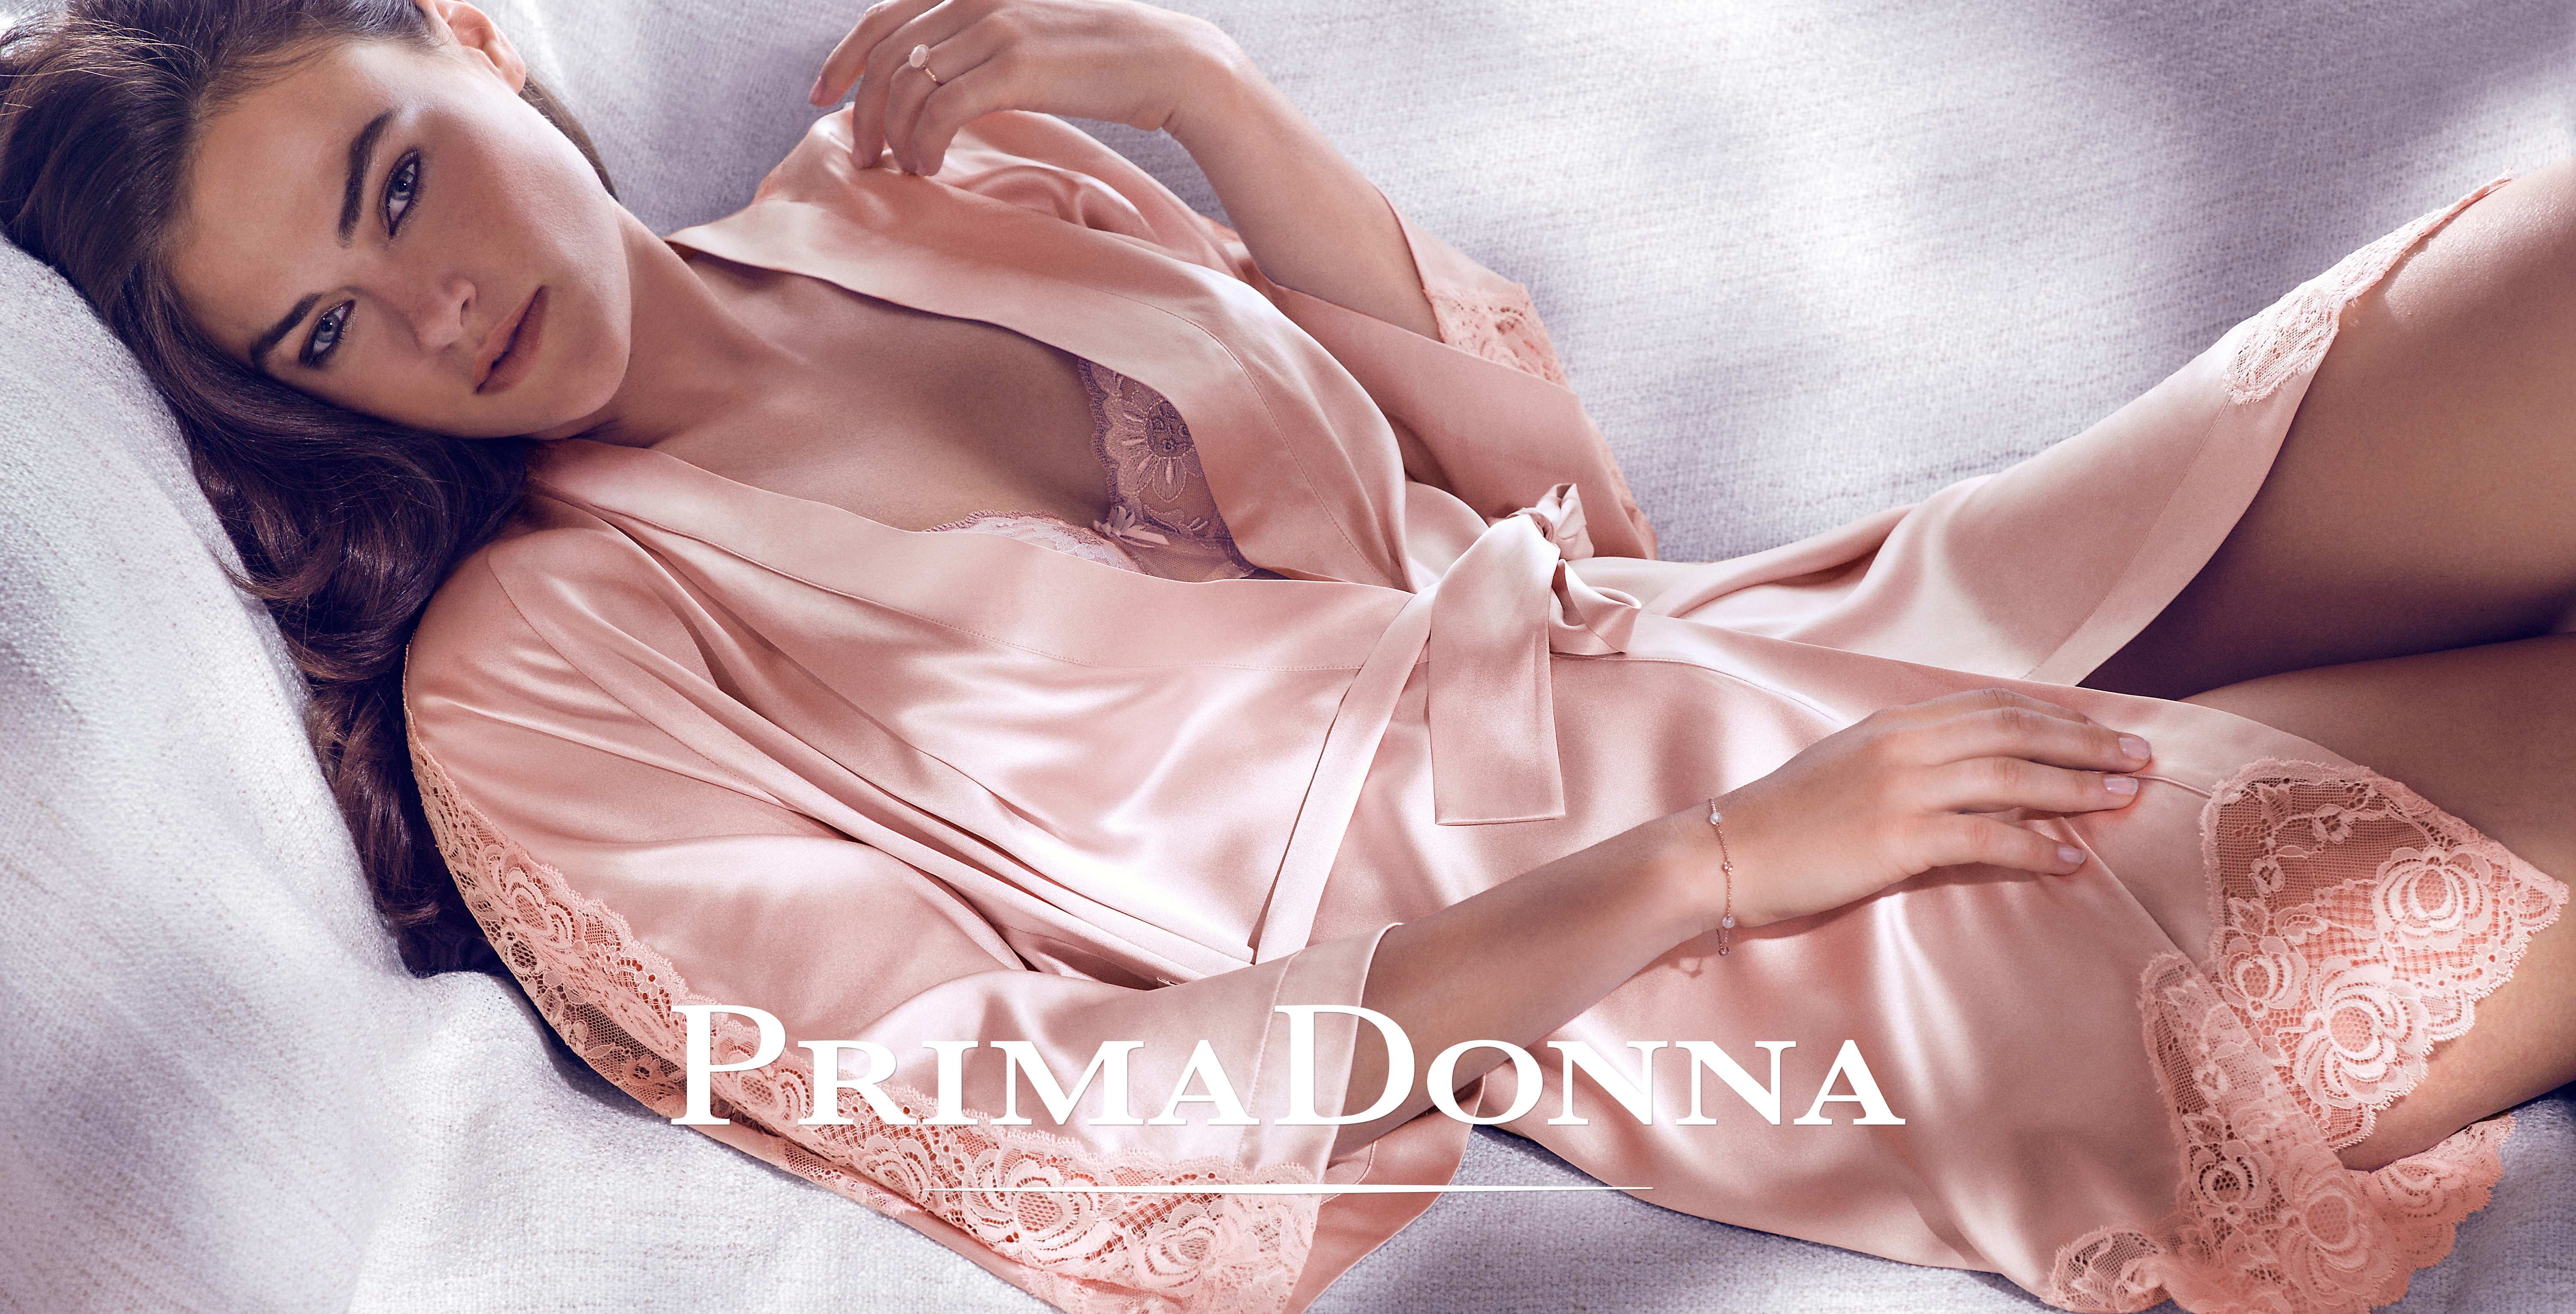 Pollard and Read|Prima|Donna|Deauville|Winter Grey|